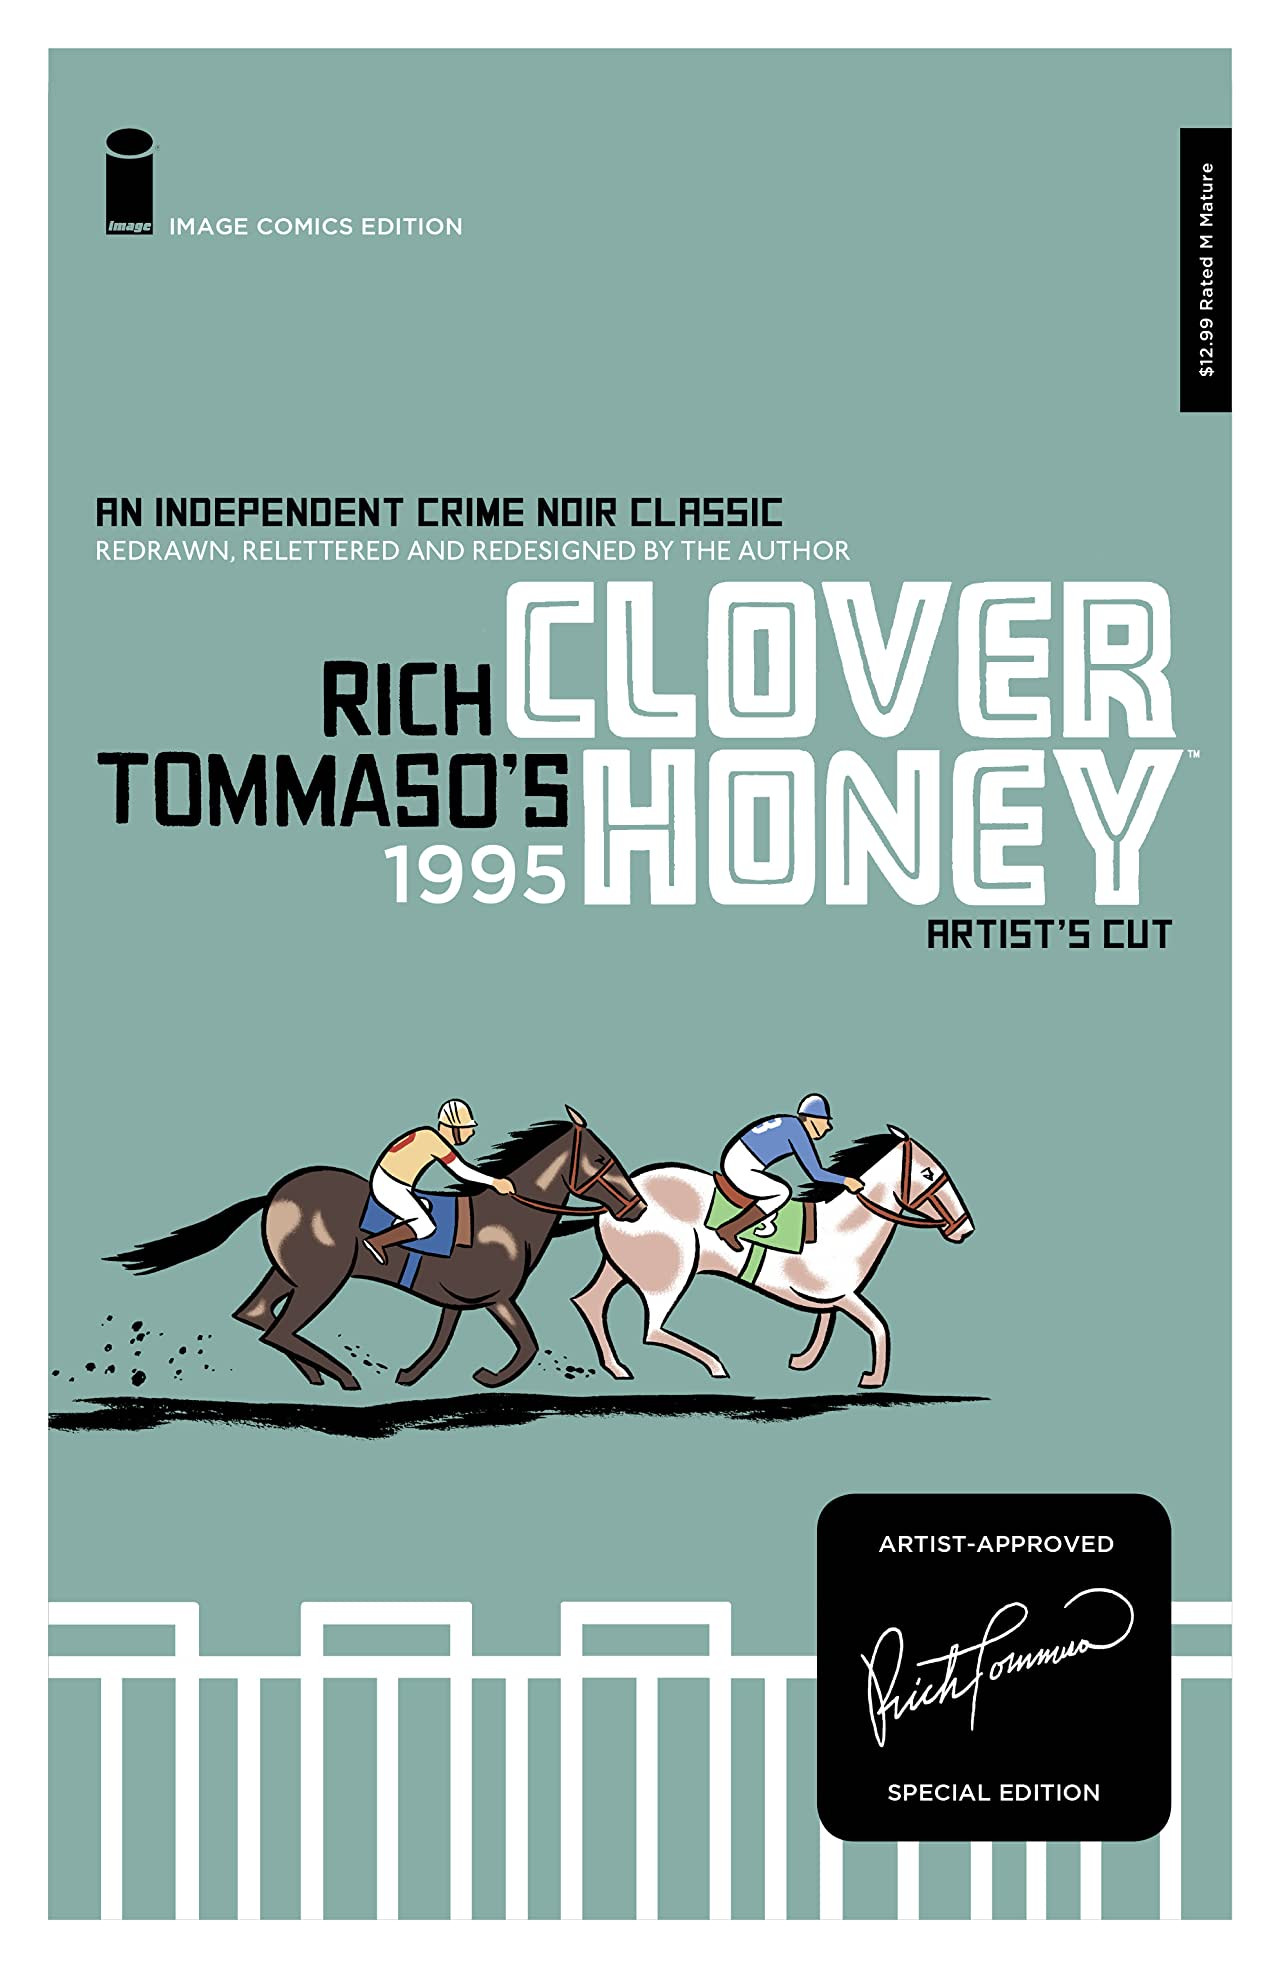 Clover Honey Special Edition